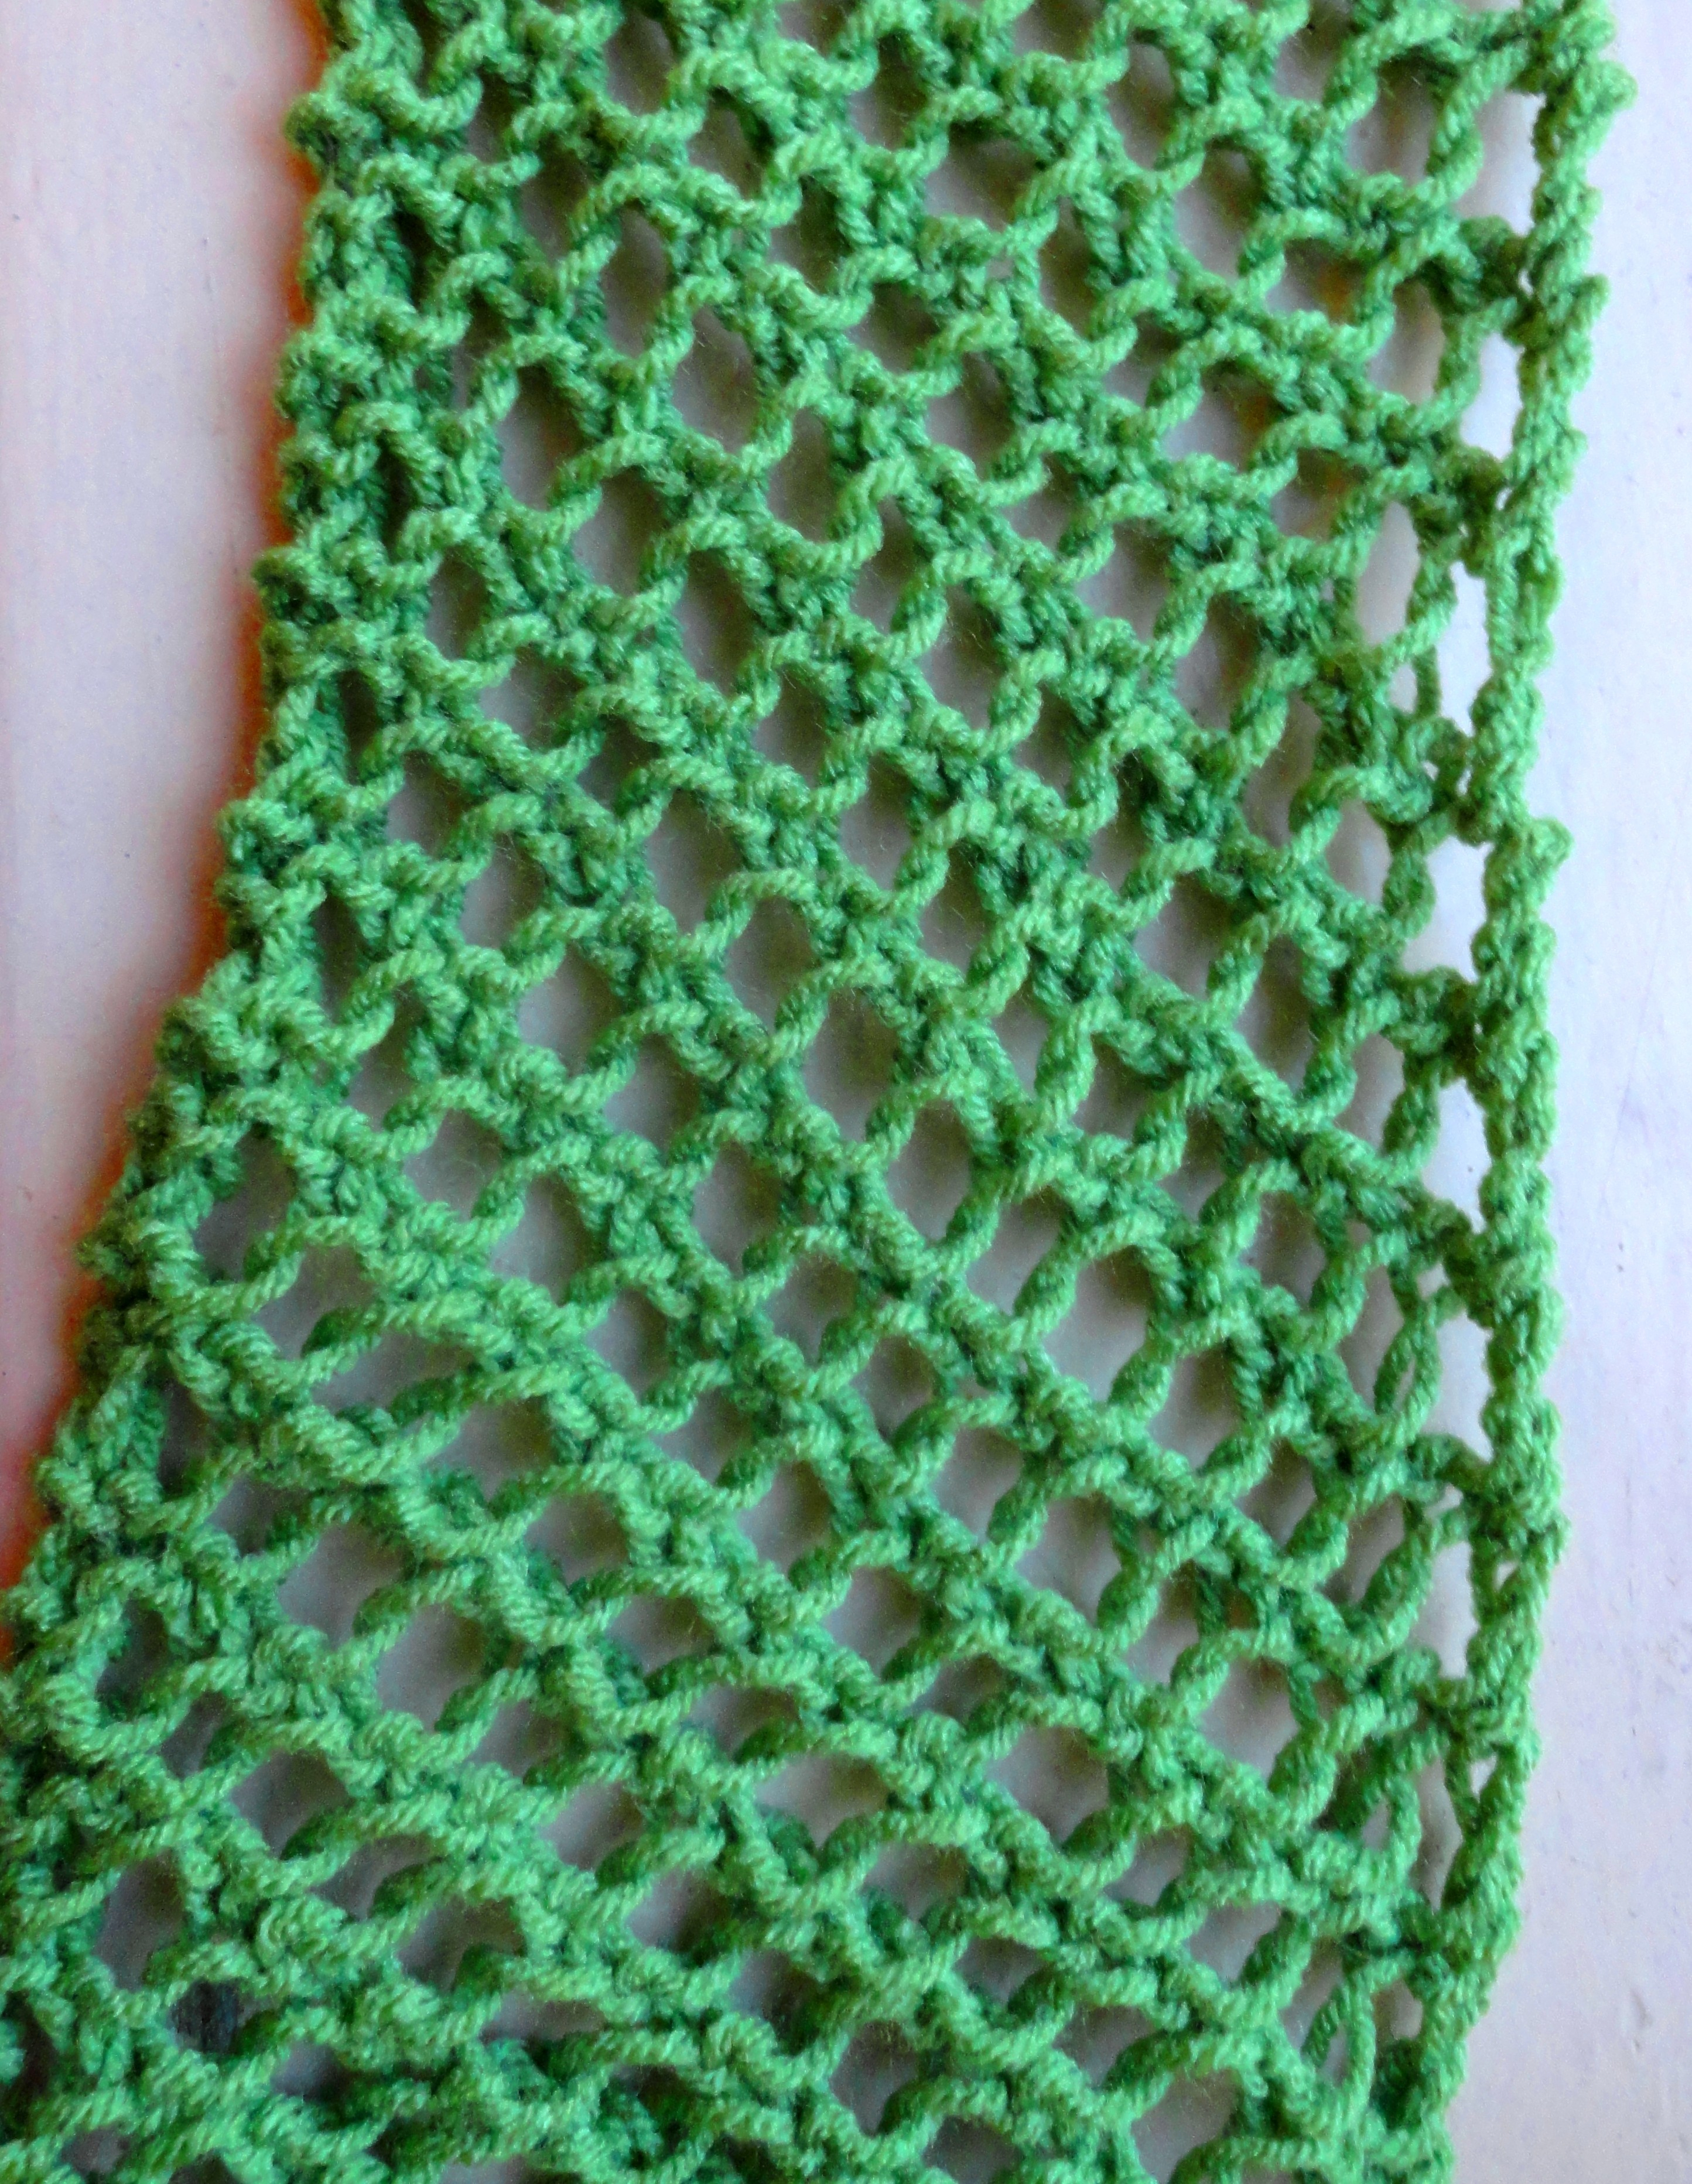 Knitting Patterns Easy Scarf Easy Scarf Knitting Patterns New Knitting Patterns For Scarves Easy